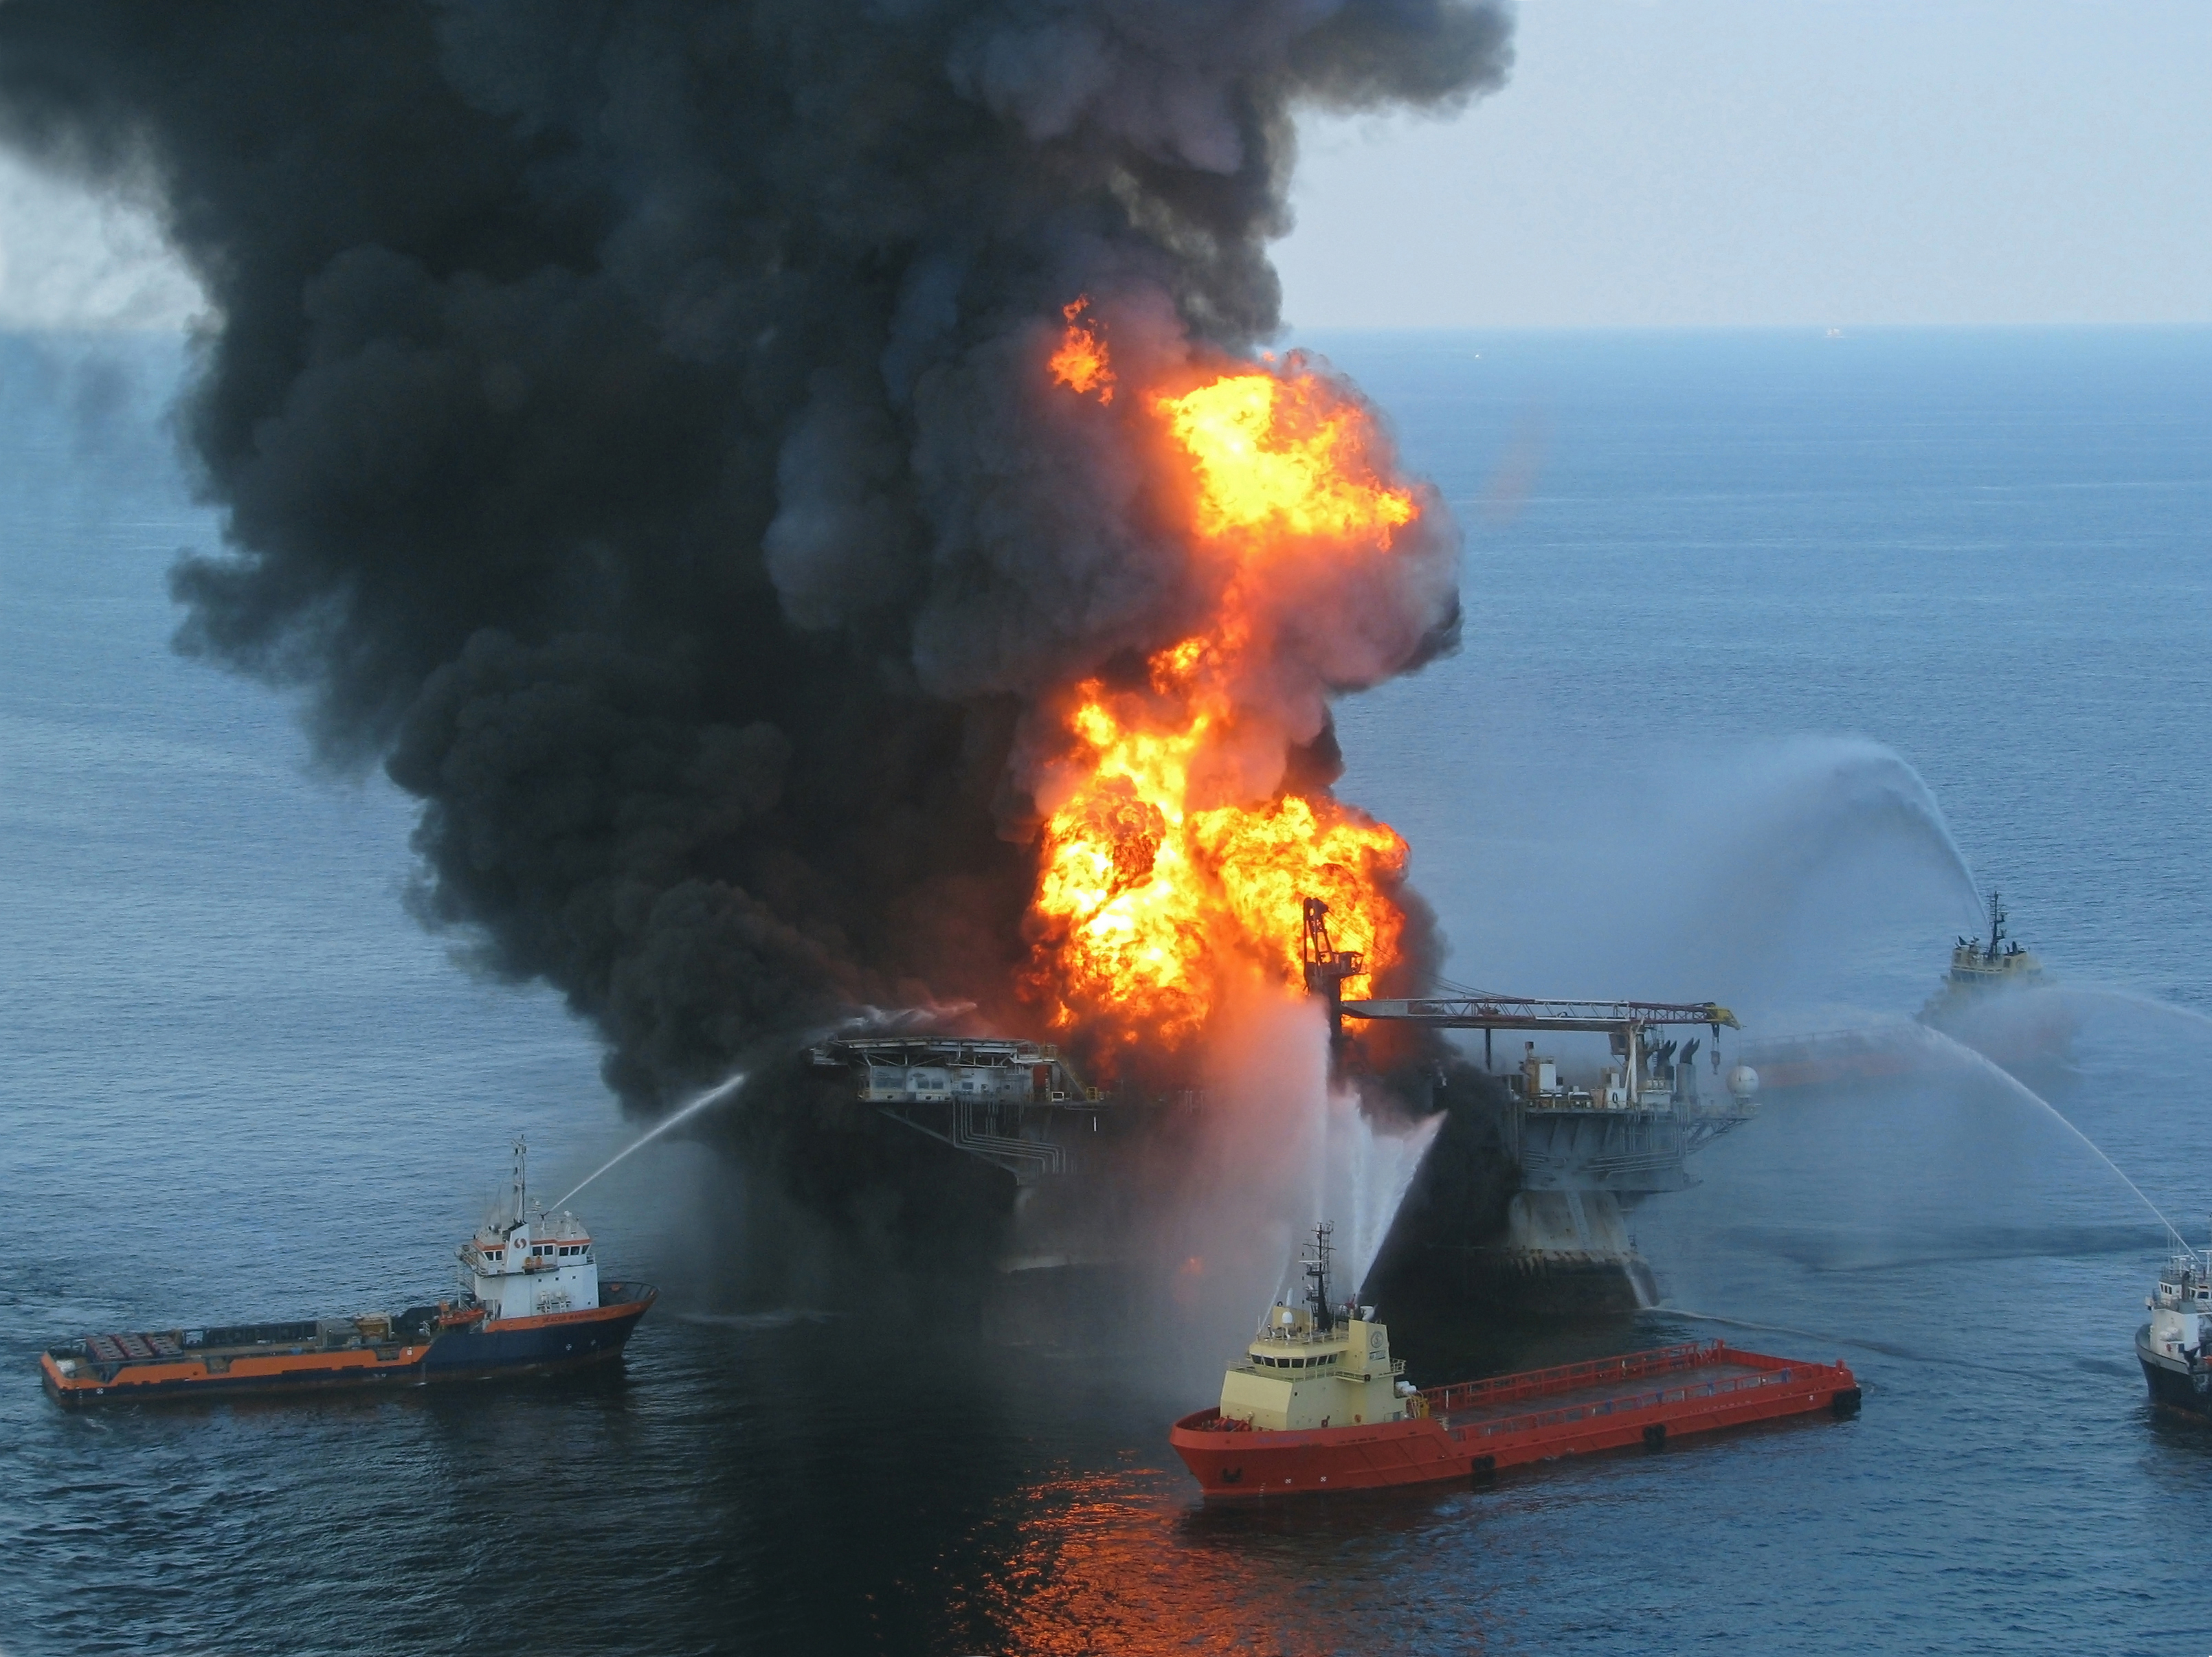 List of natural gas and oil production accidents in the United